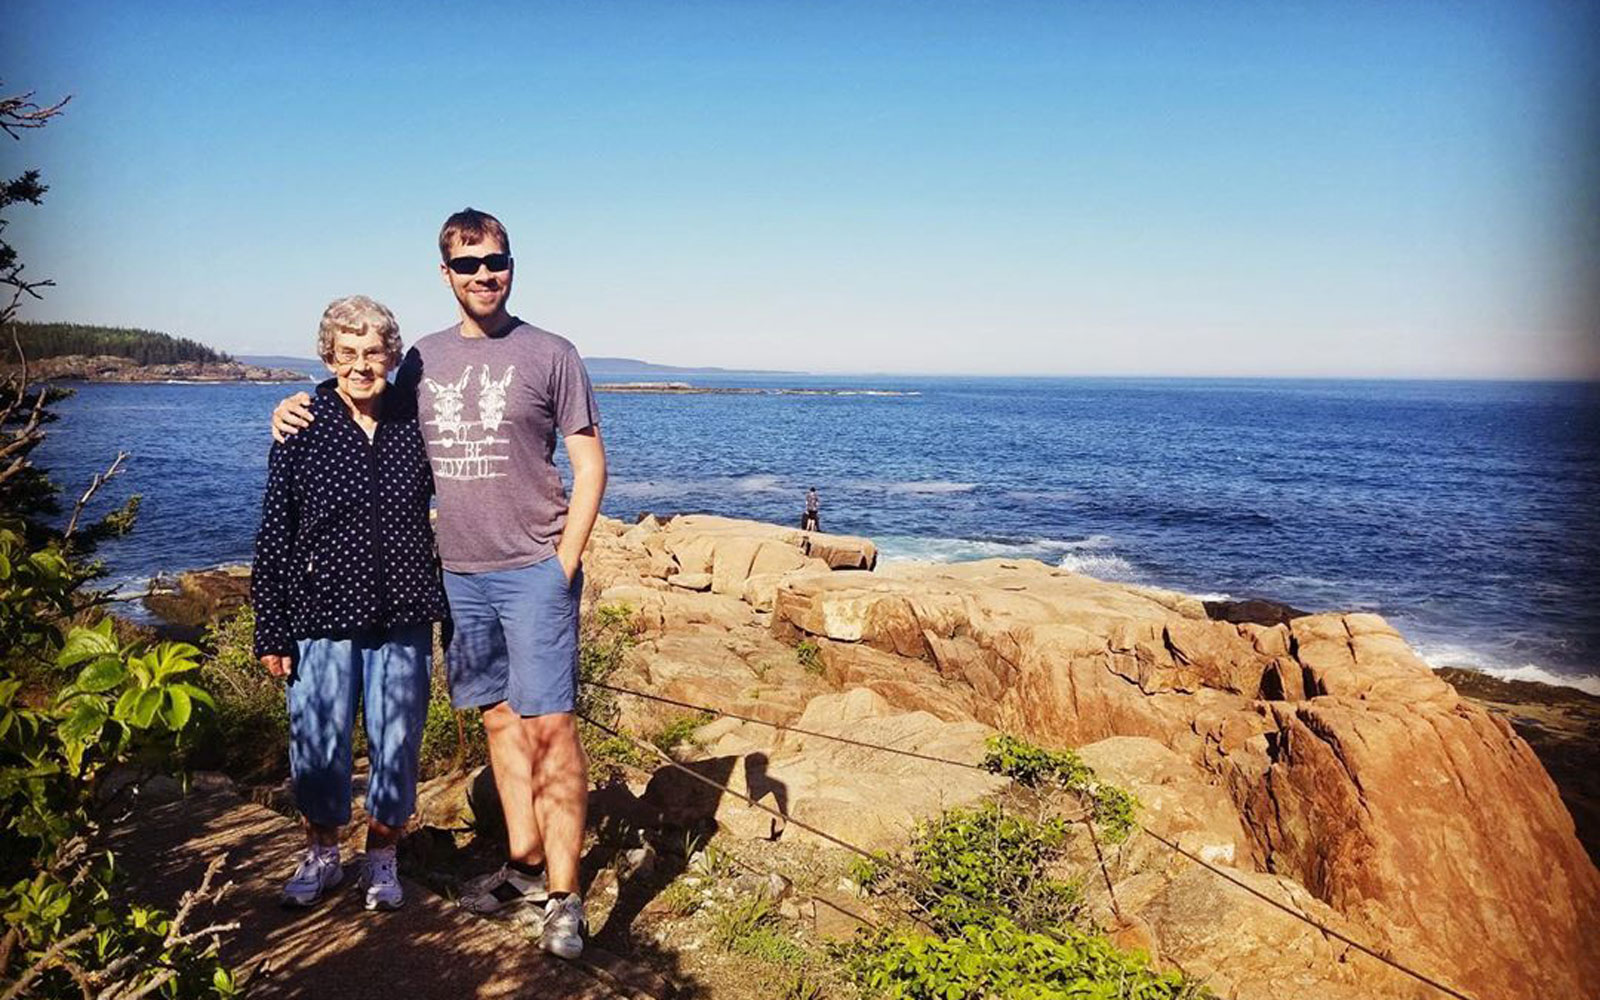 This 89-year-old Grandmother Has Never Seen the Ocean or Mountains — so Her Grandson Is Taking Her to All 61 U.S. National Parks